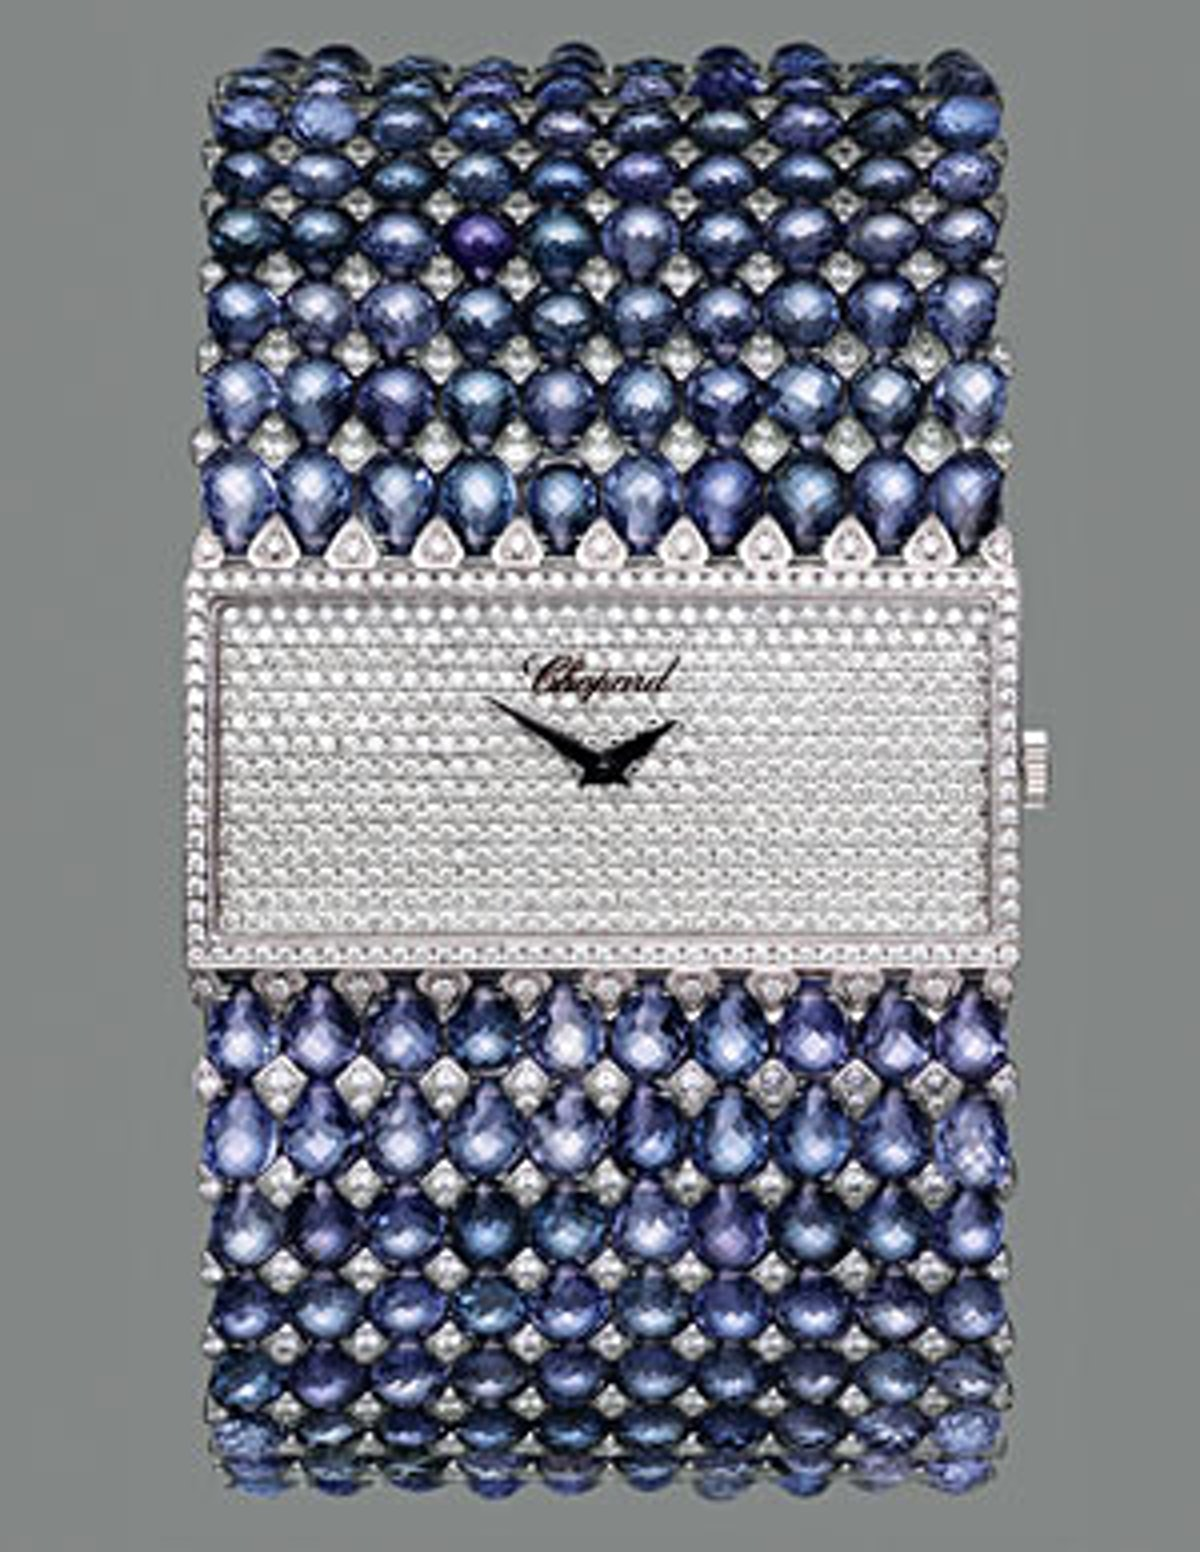 acss_sparkly_watches_04_v.jpg